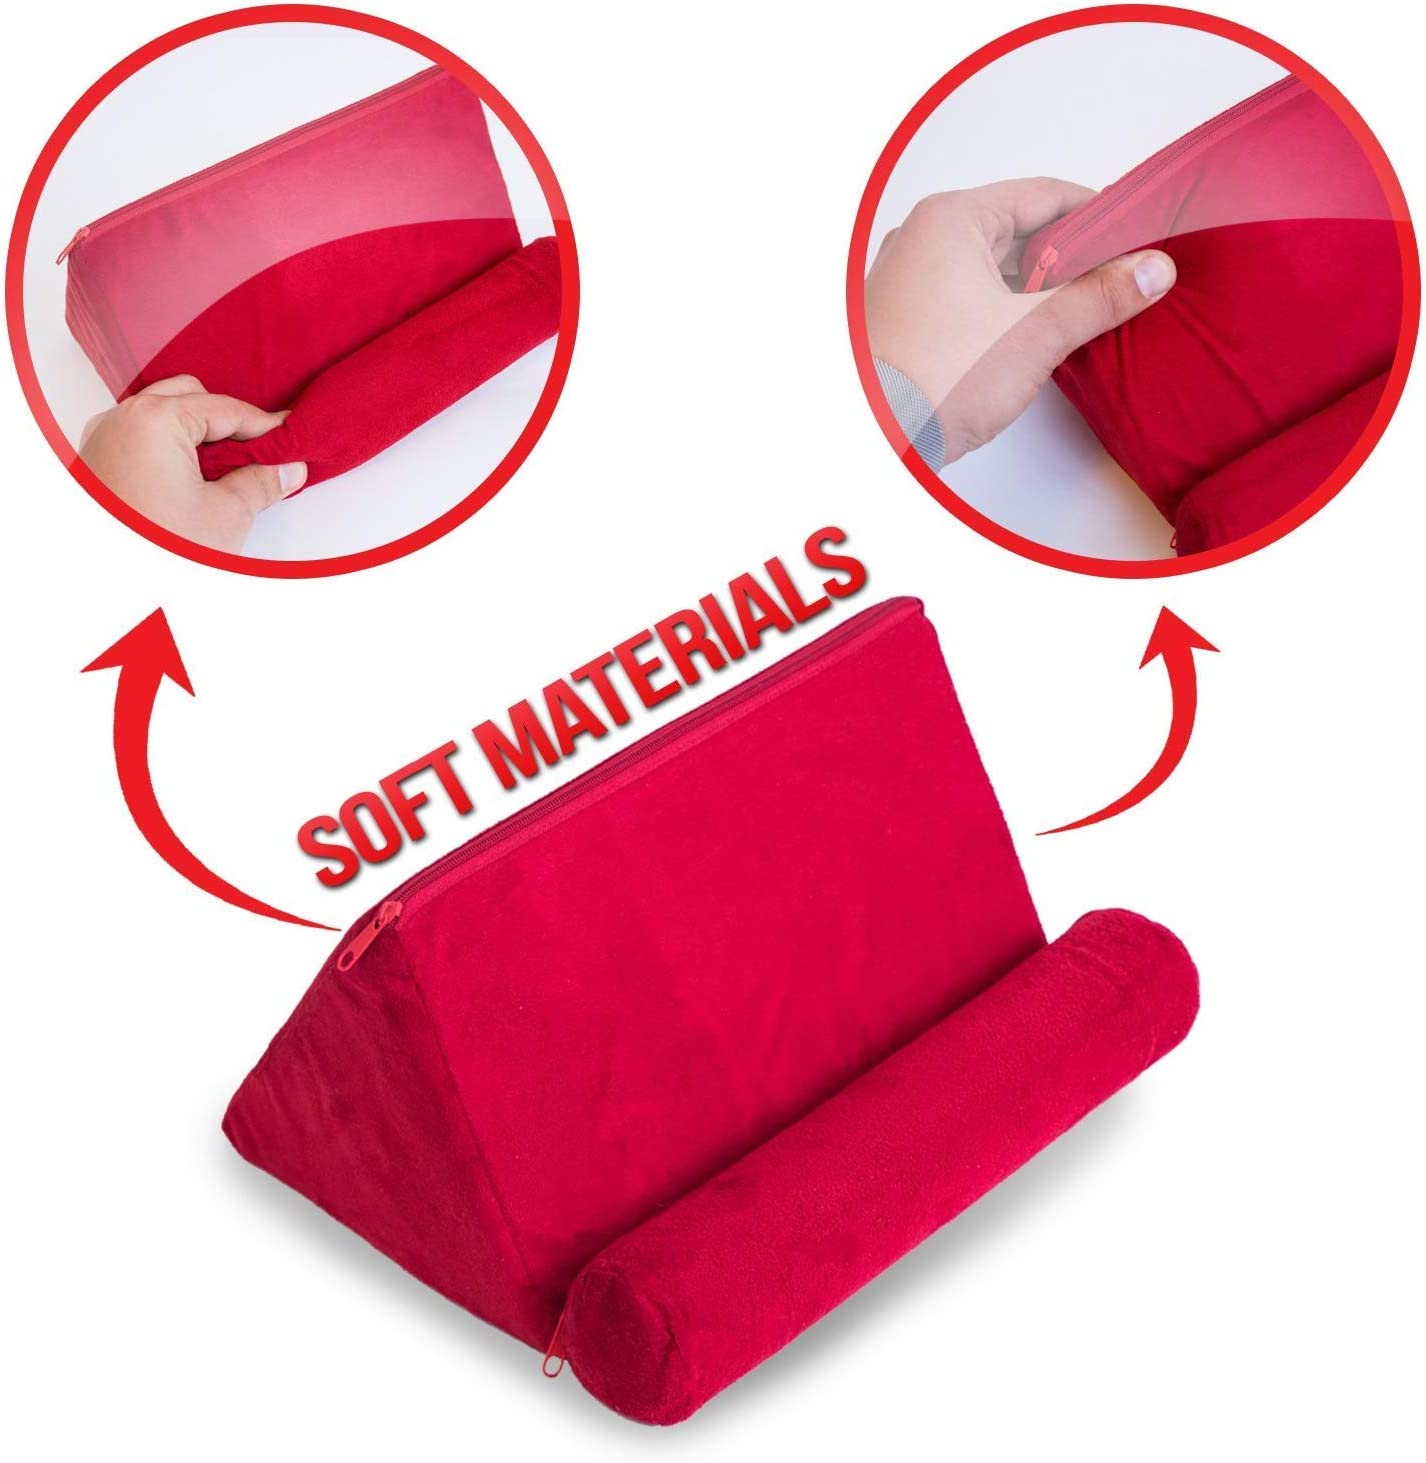 iPad Tablet Pillow Holder for Lap Pillow for Tablet or iPad Universal Phone and Tablet Holder for Bed Can Be Used also on Floor Red Color Chair Couch Desk